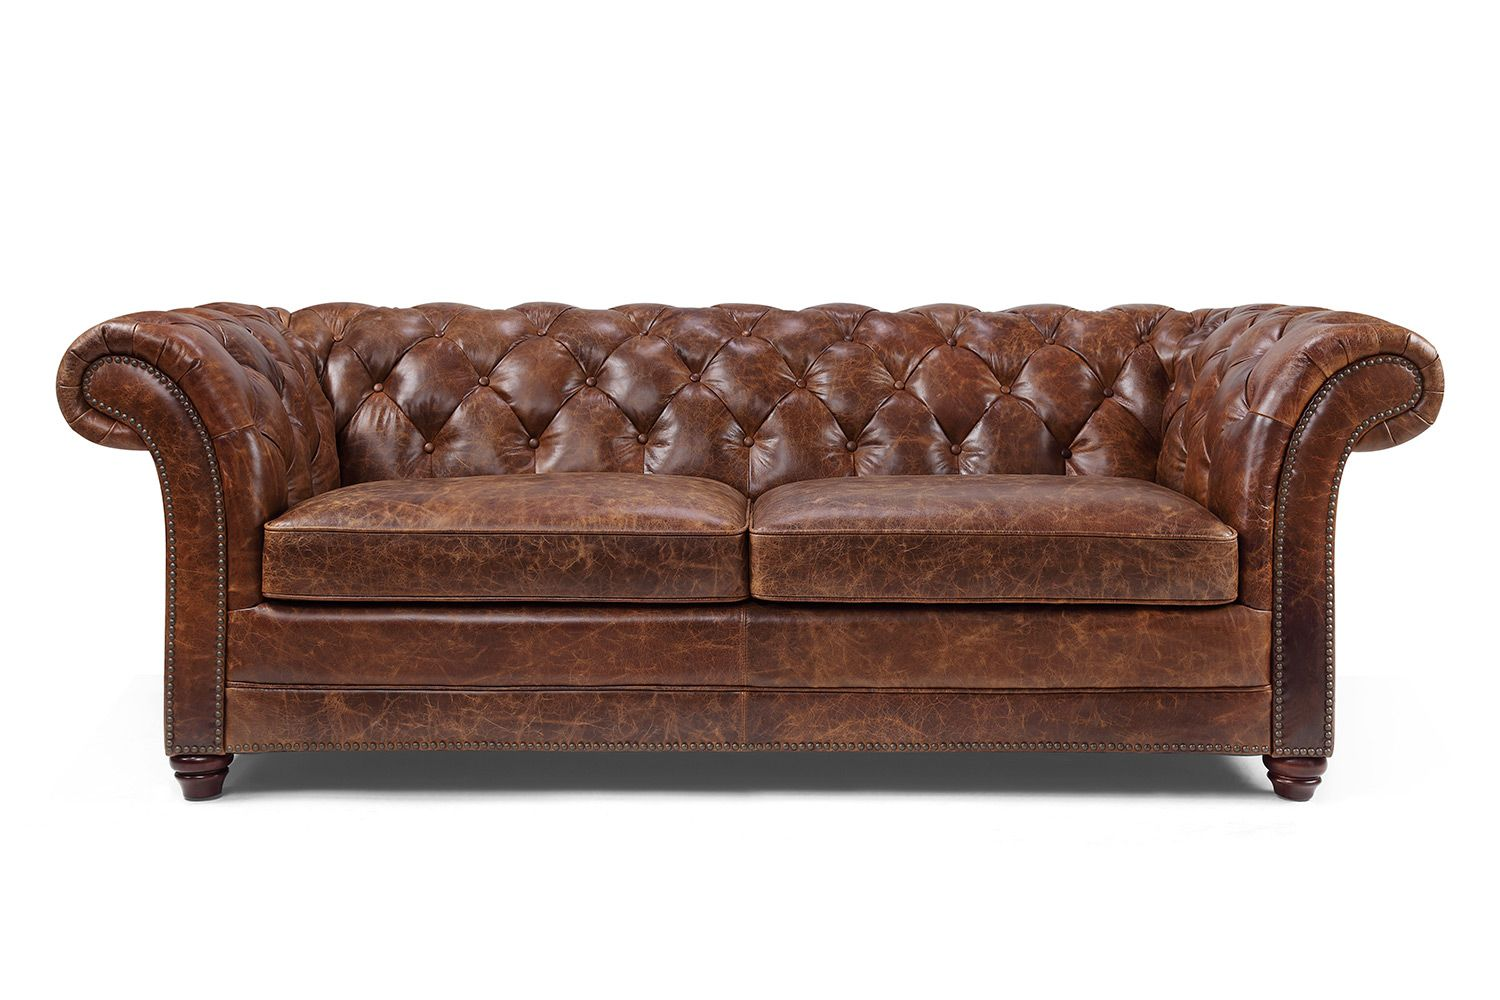 Canape Chesterfield En Cuir Westminster Canape Chesterfield Canape Cuir Canape Ancien